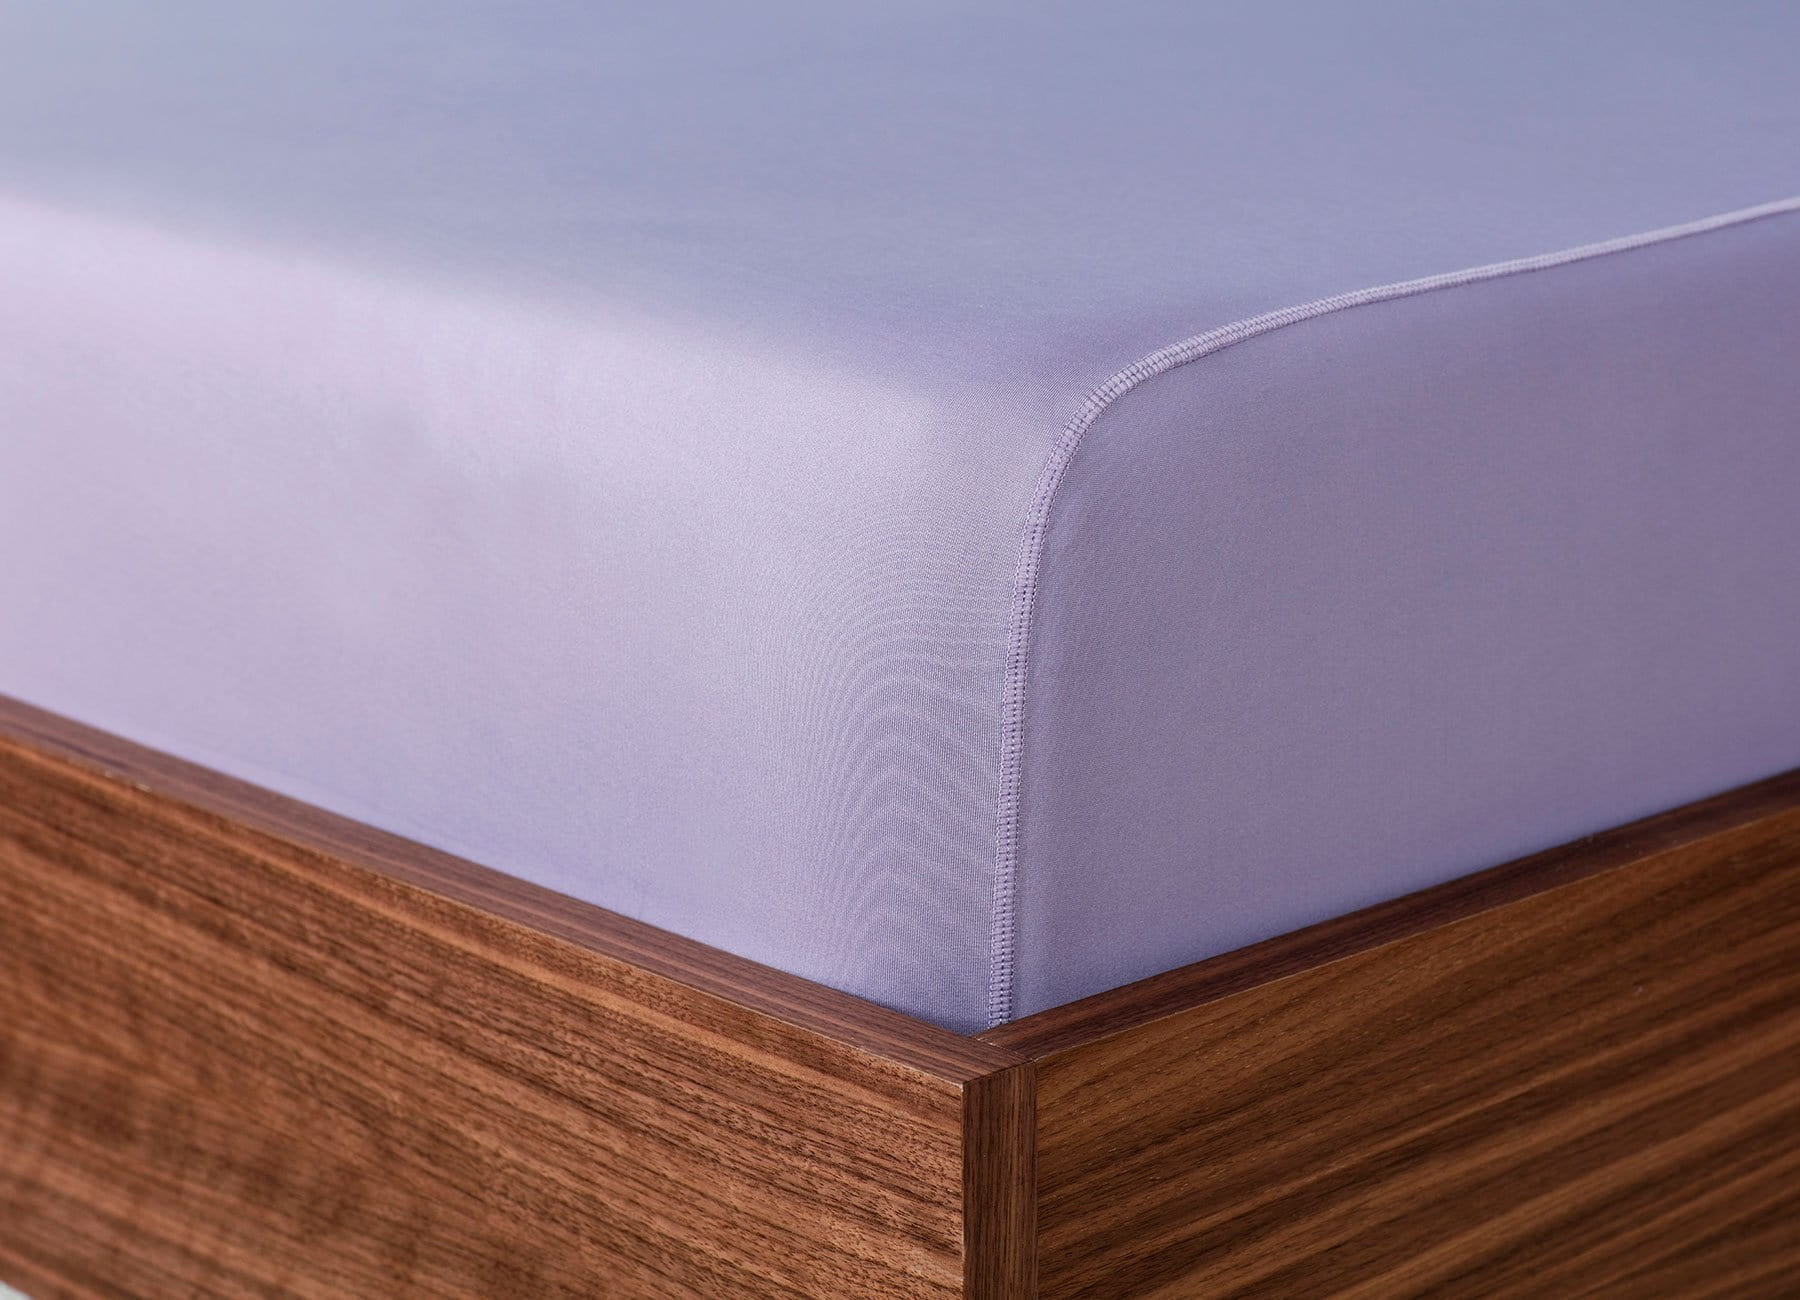 Original Performance Fitted Sheet on bed in Lavender #choose-your-color_lavender